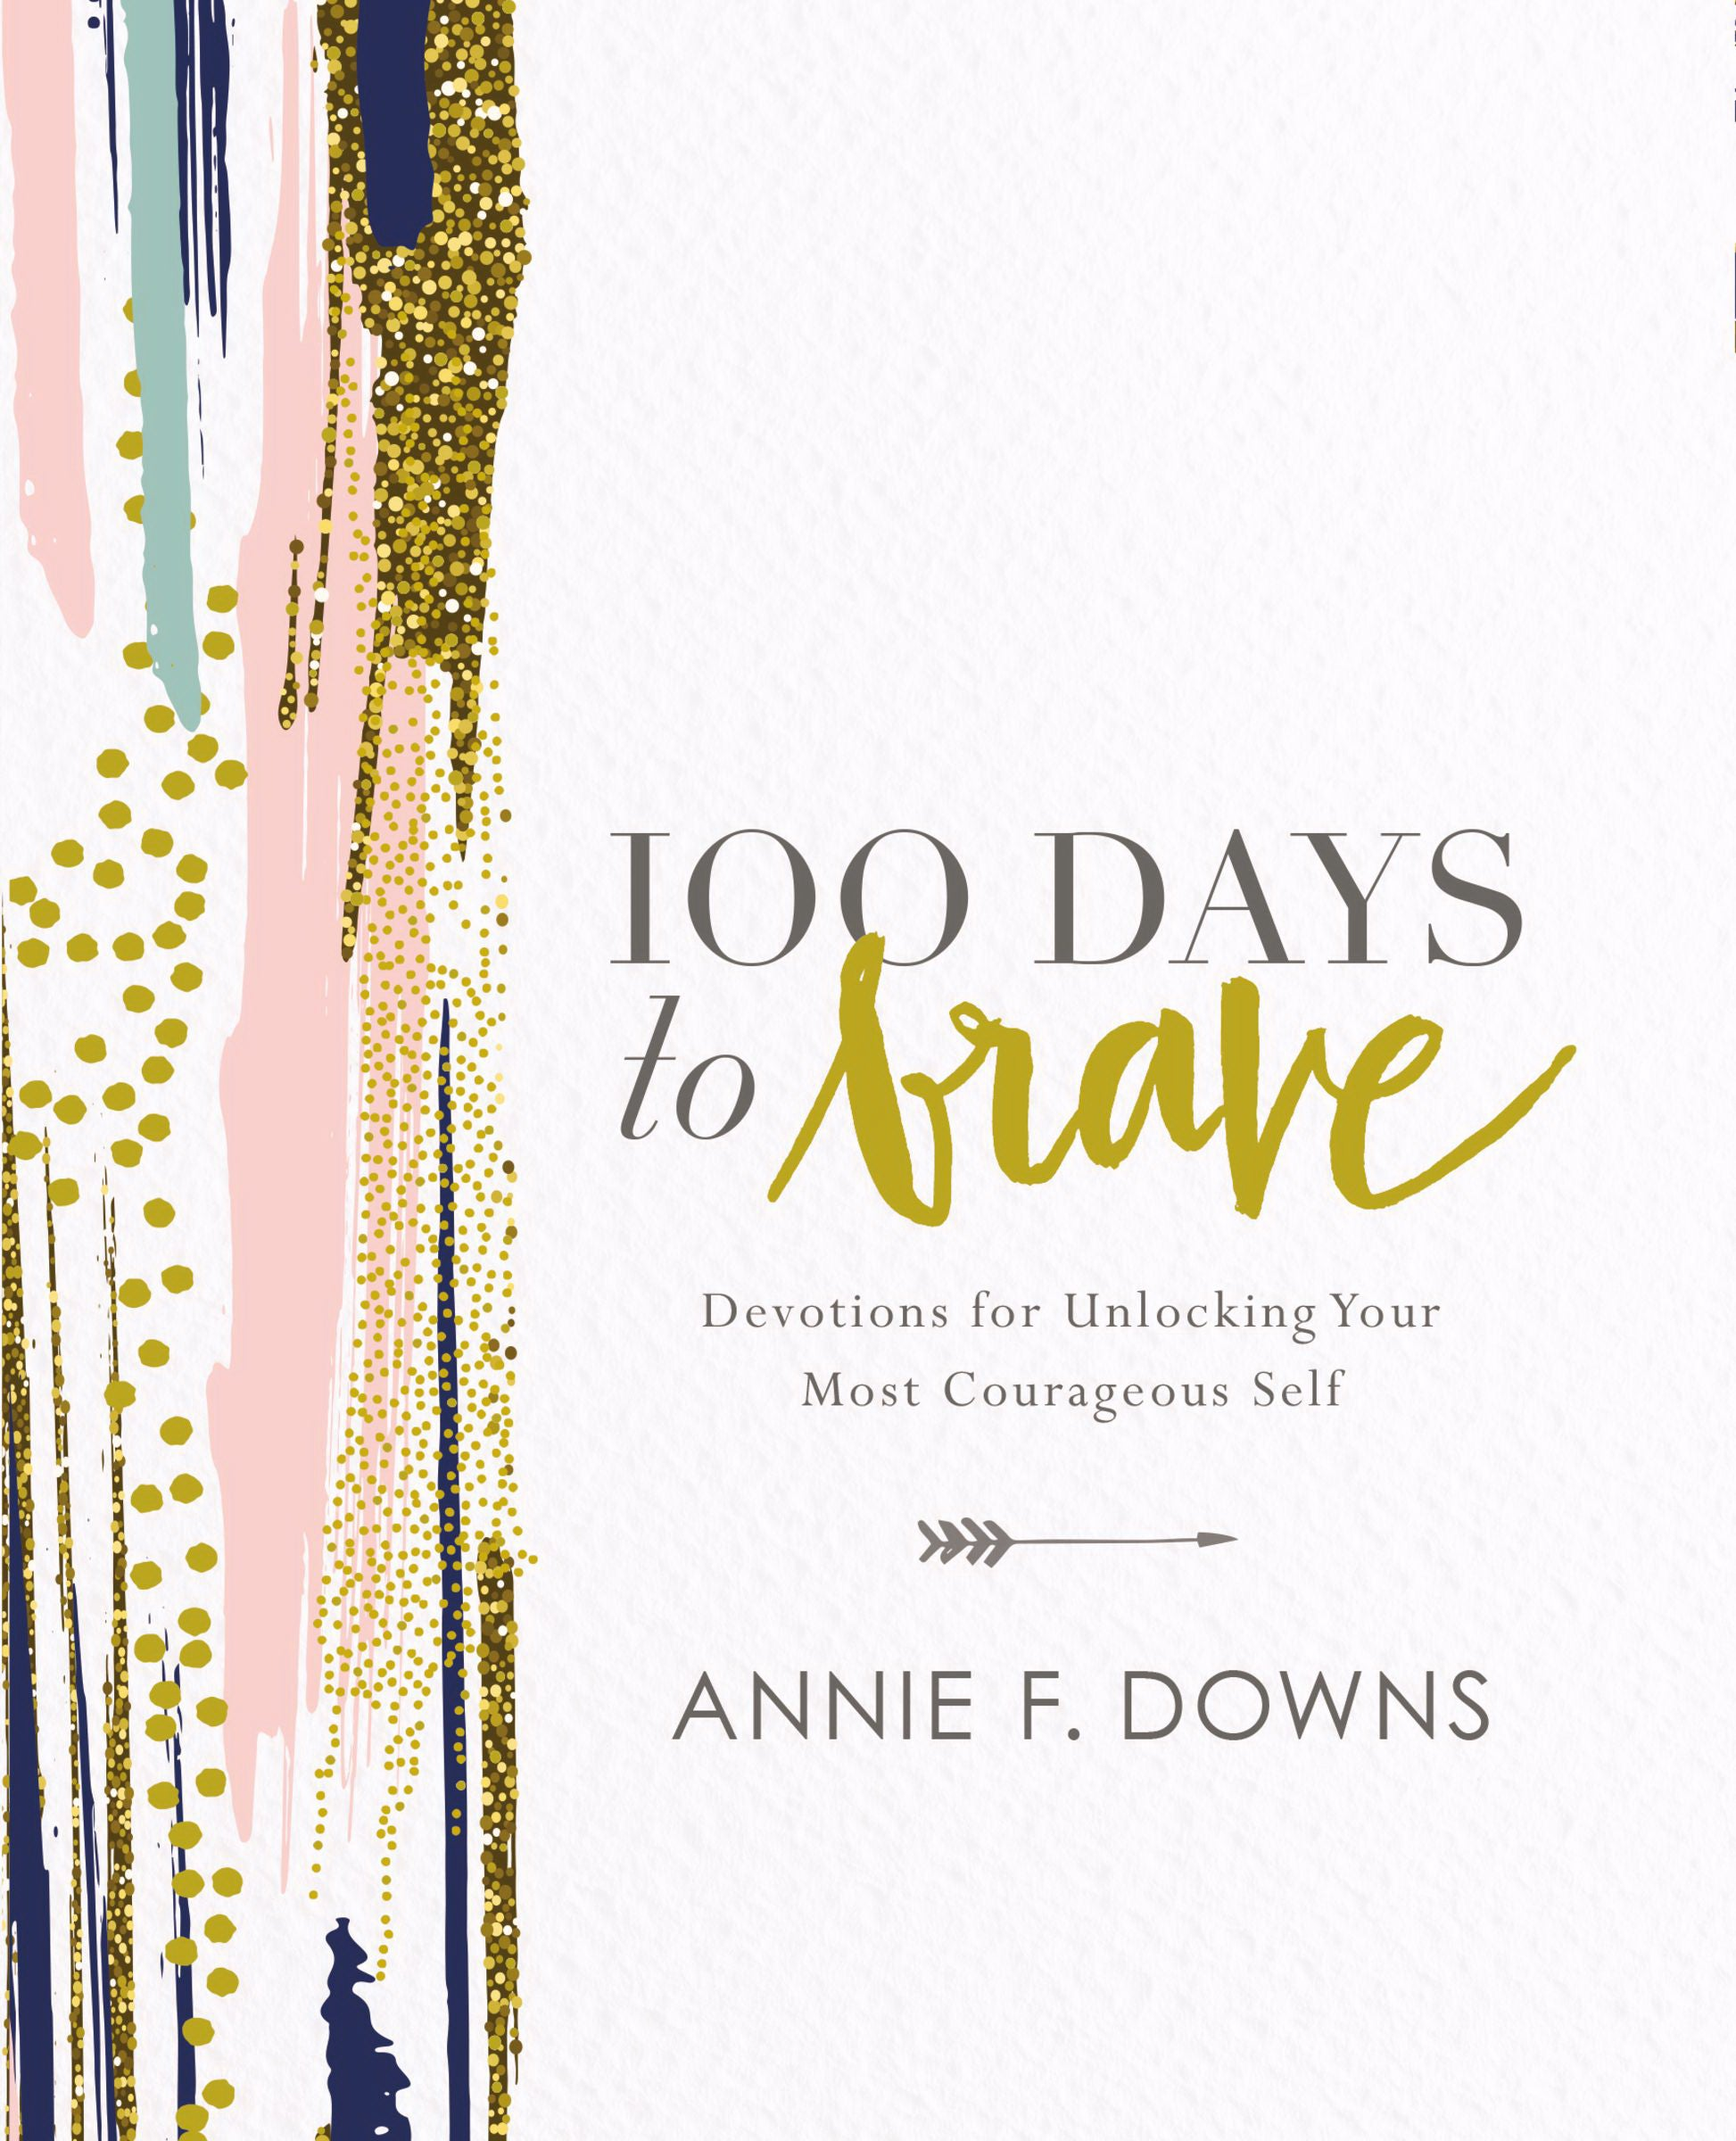 100 Days To Brave-Hardcover